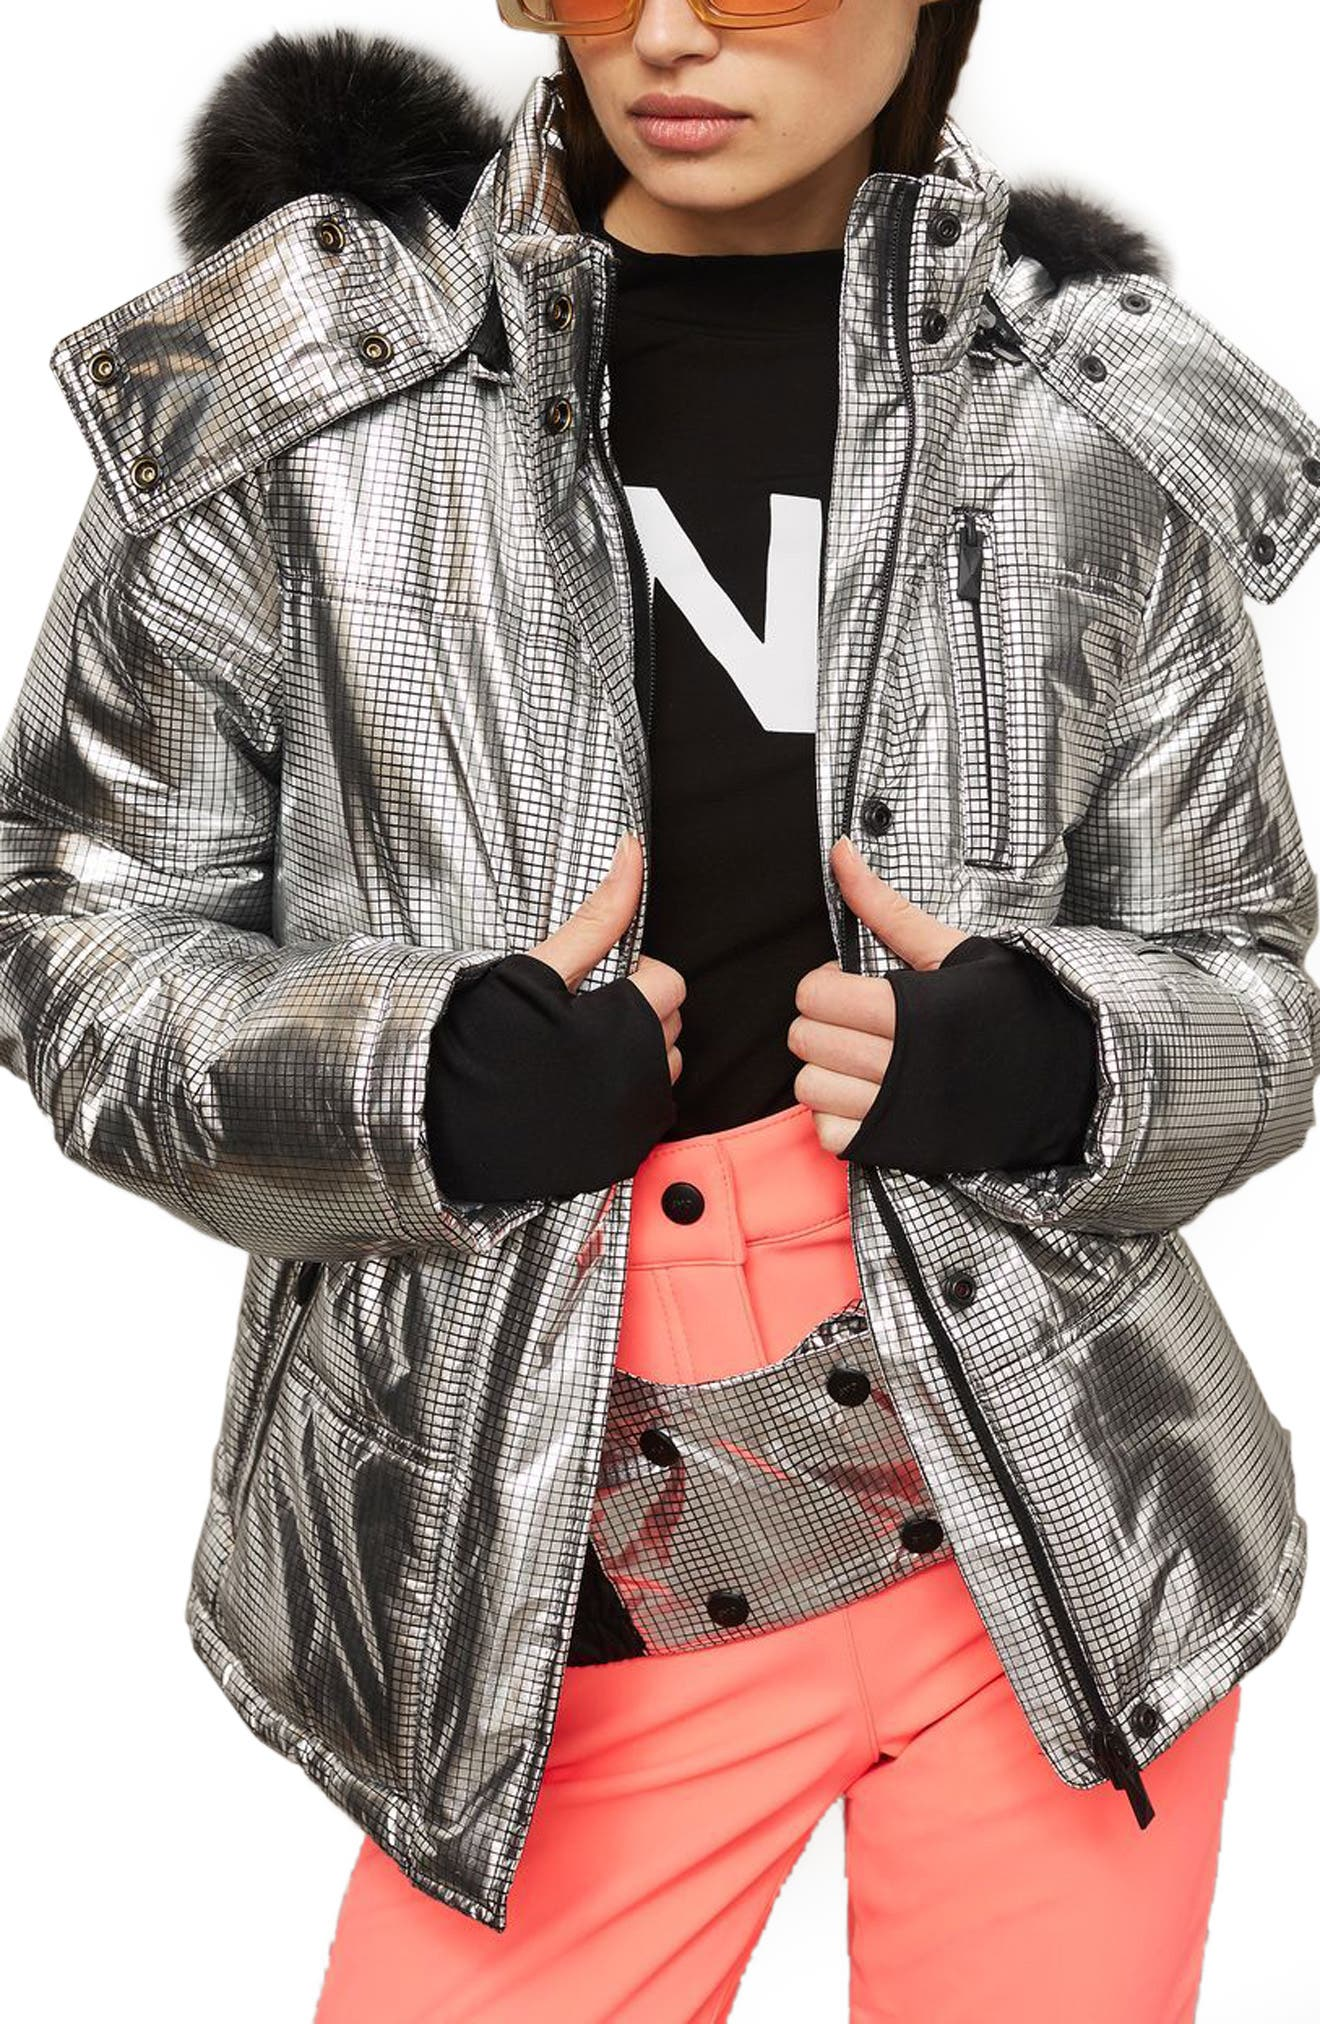 SNO Rio Faux Fur Hood Metallic Puffer Jacket,                             Main thumbnail 1, color,                             Silver